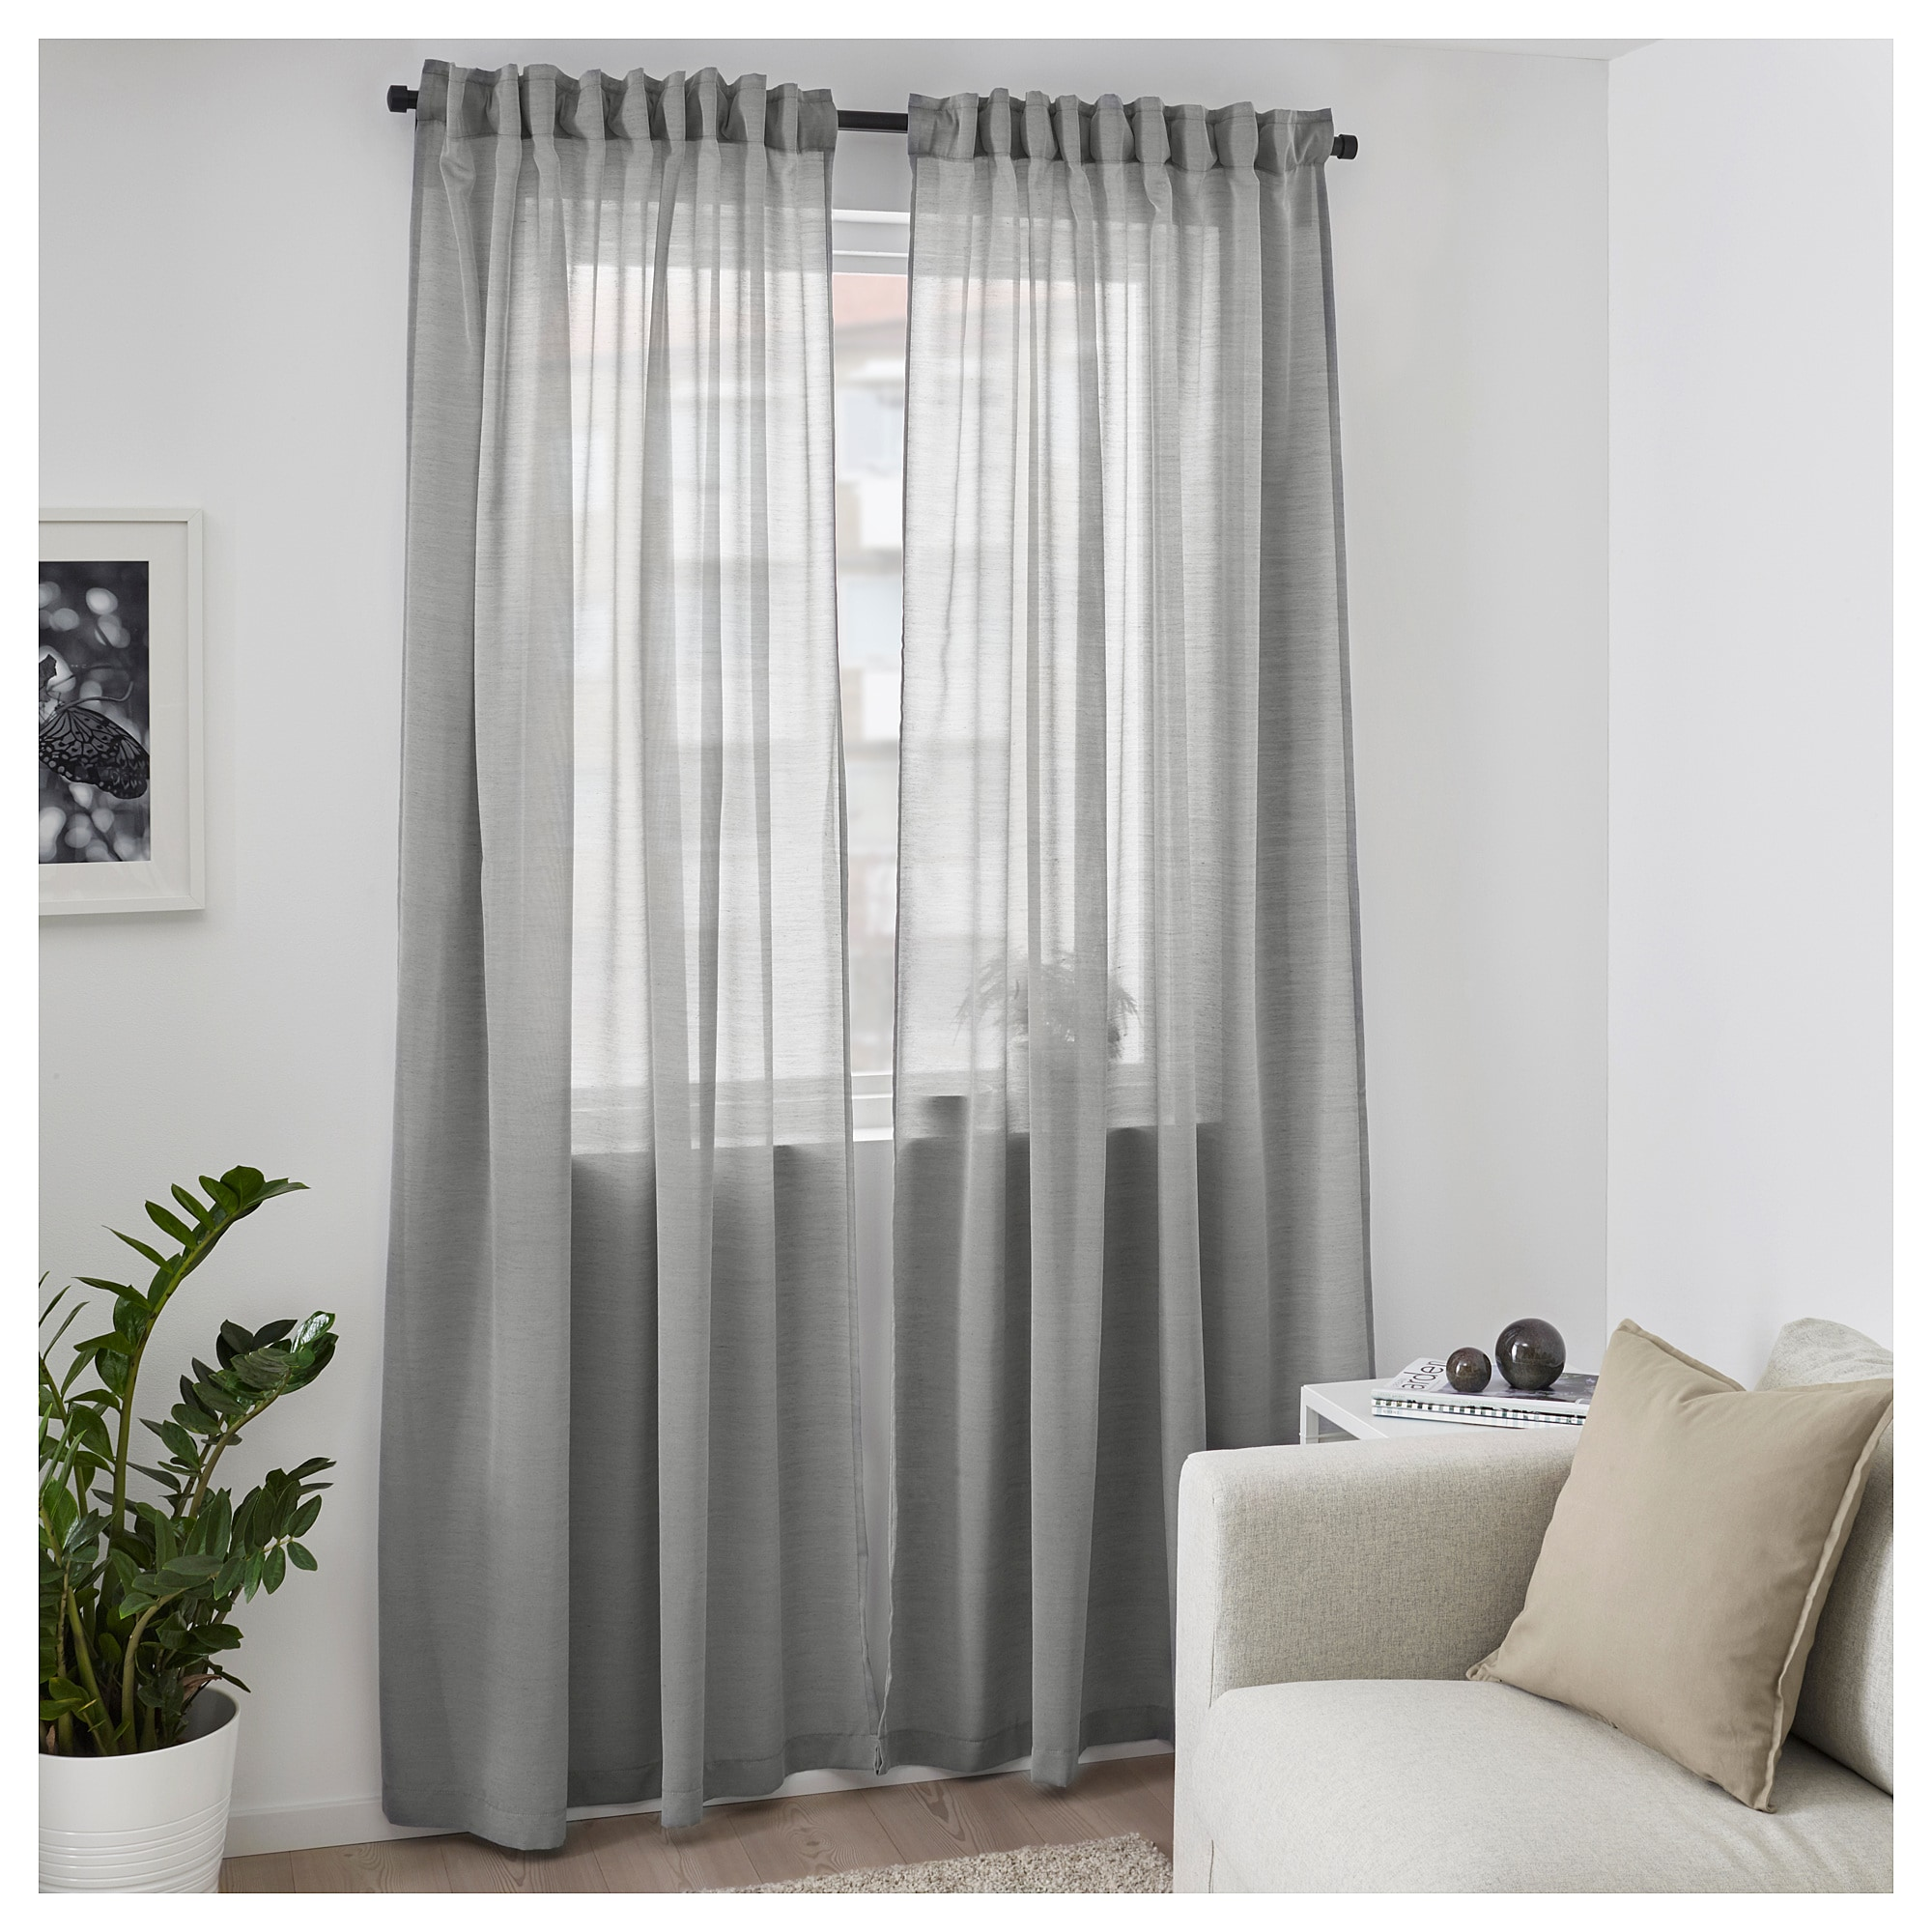 Sheer Curtains Australia Ikea Sheer Curtains Bedroom Living Room Window Blinds 2 Panels